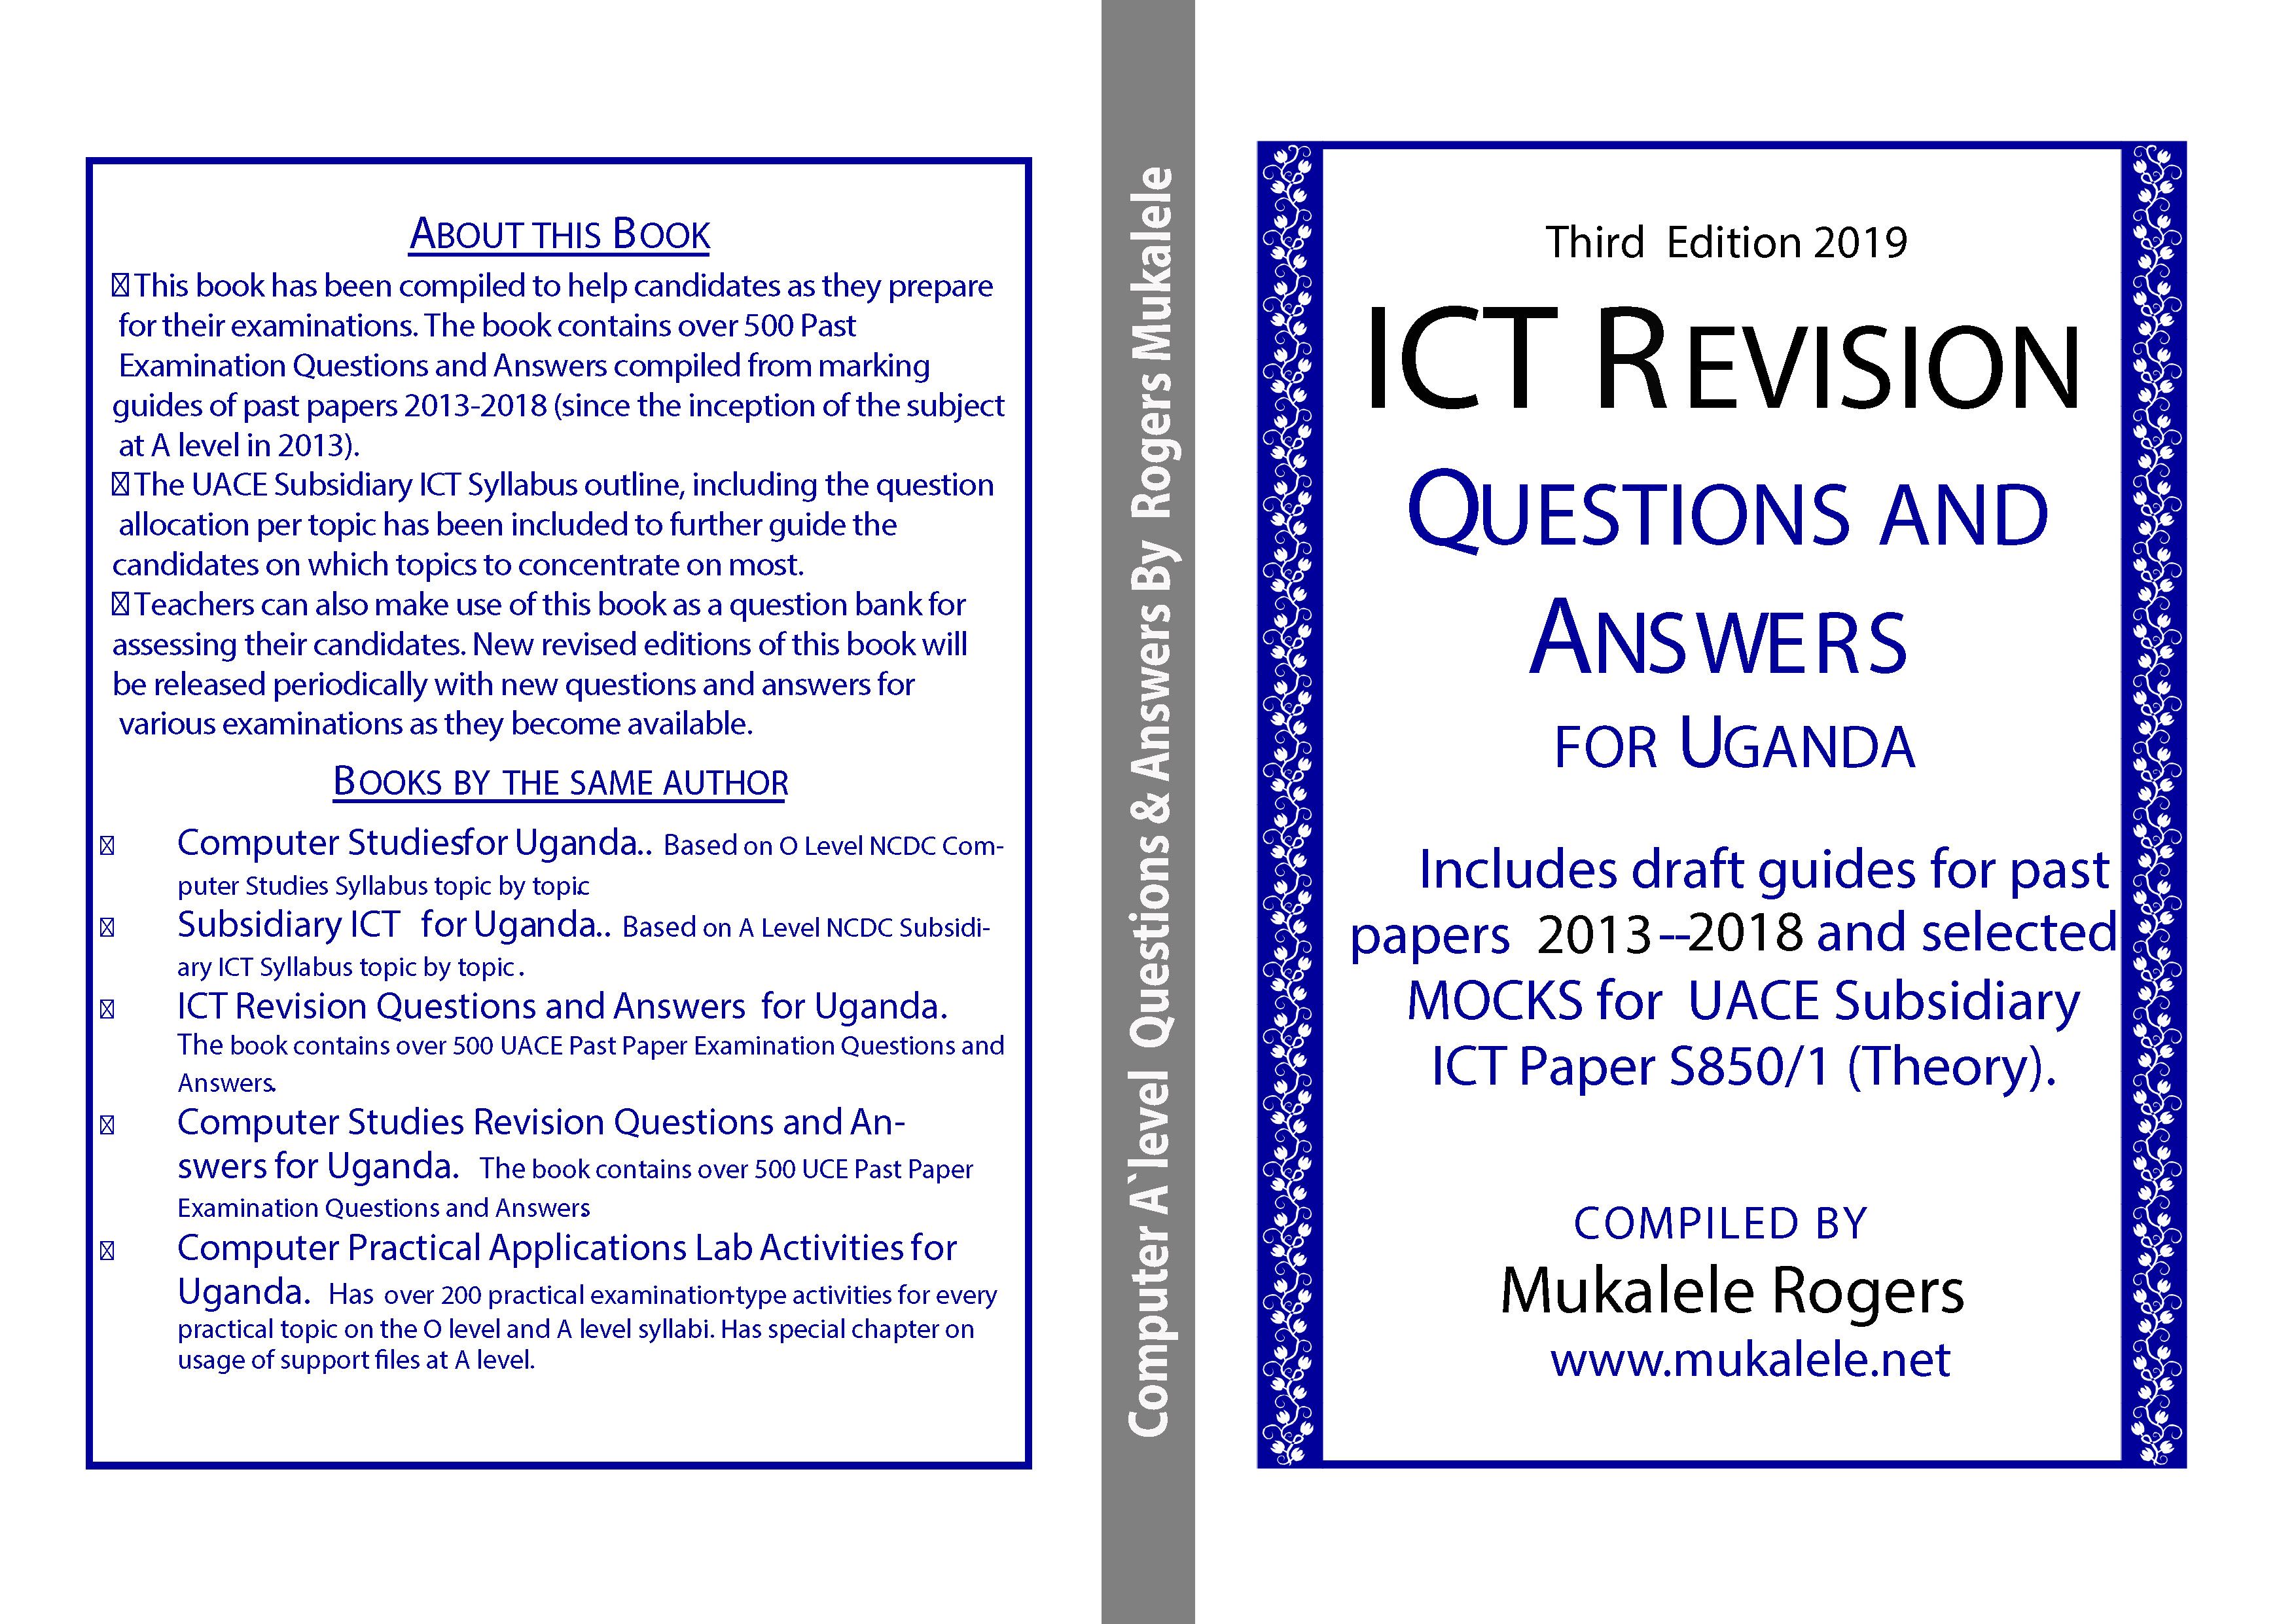 ICT Revision Questions and Answers for Uganda Booklet 3rd Edition 2019